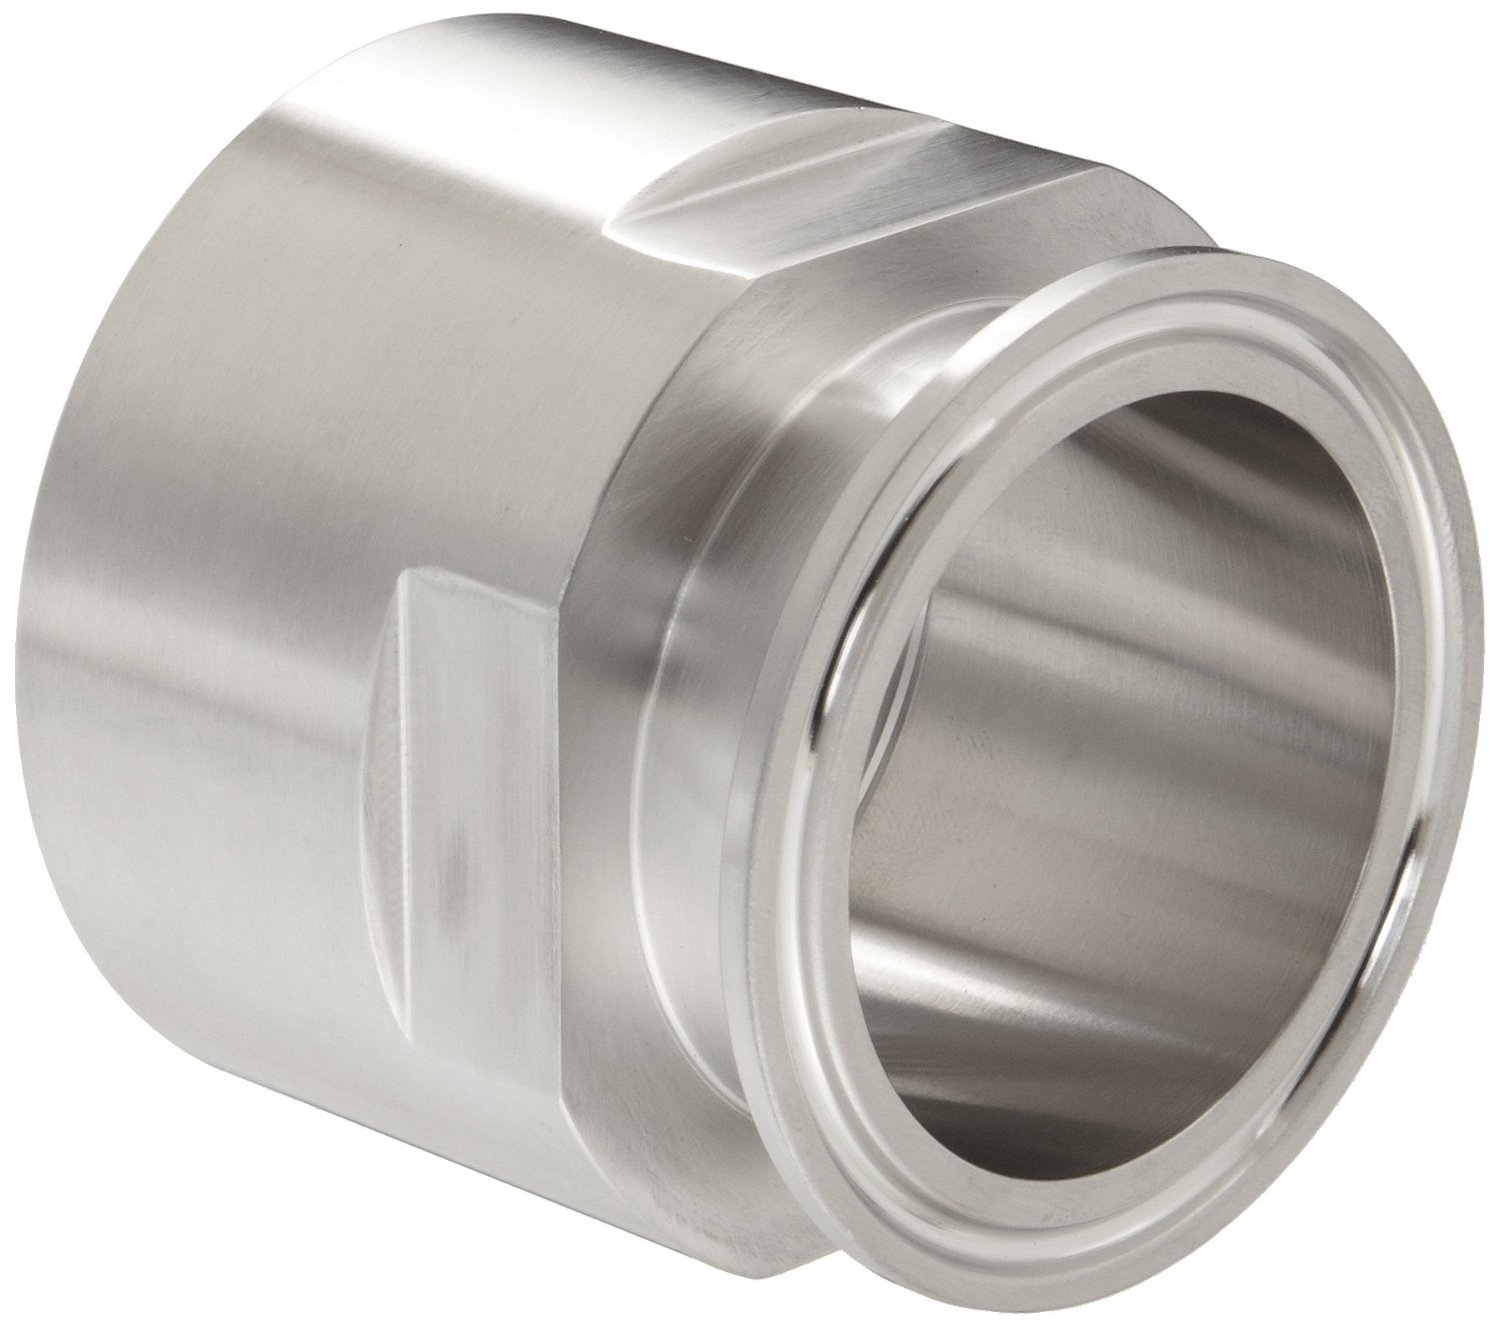 Dixon 22MP-G200 Stainless Steel 304 Sanitary Fitting, Clamp Adapter, 2'' Tube OD x 2'' NPT Female